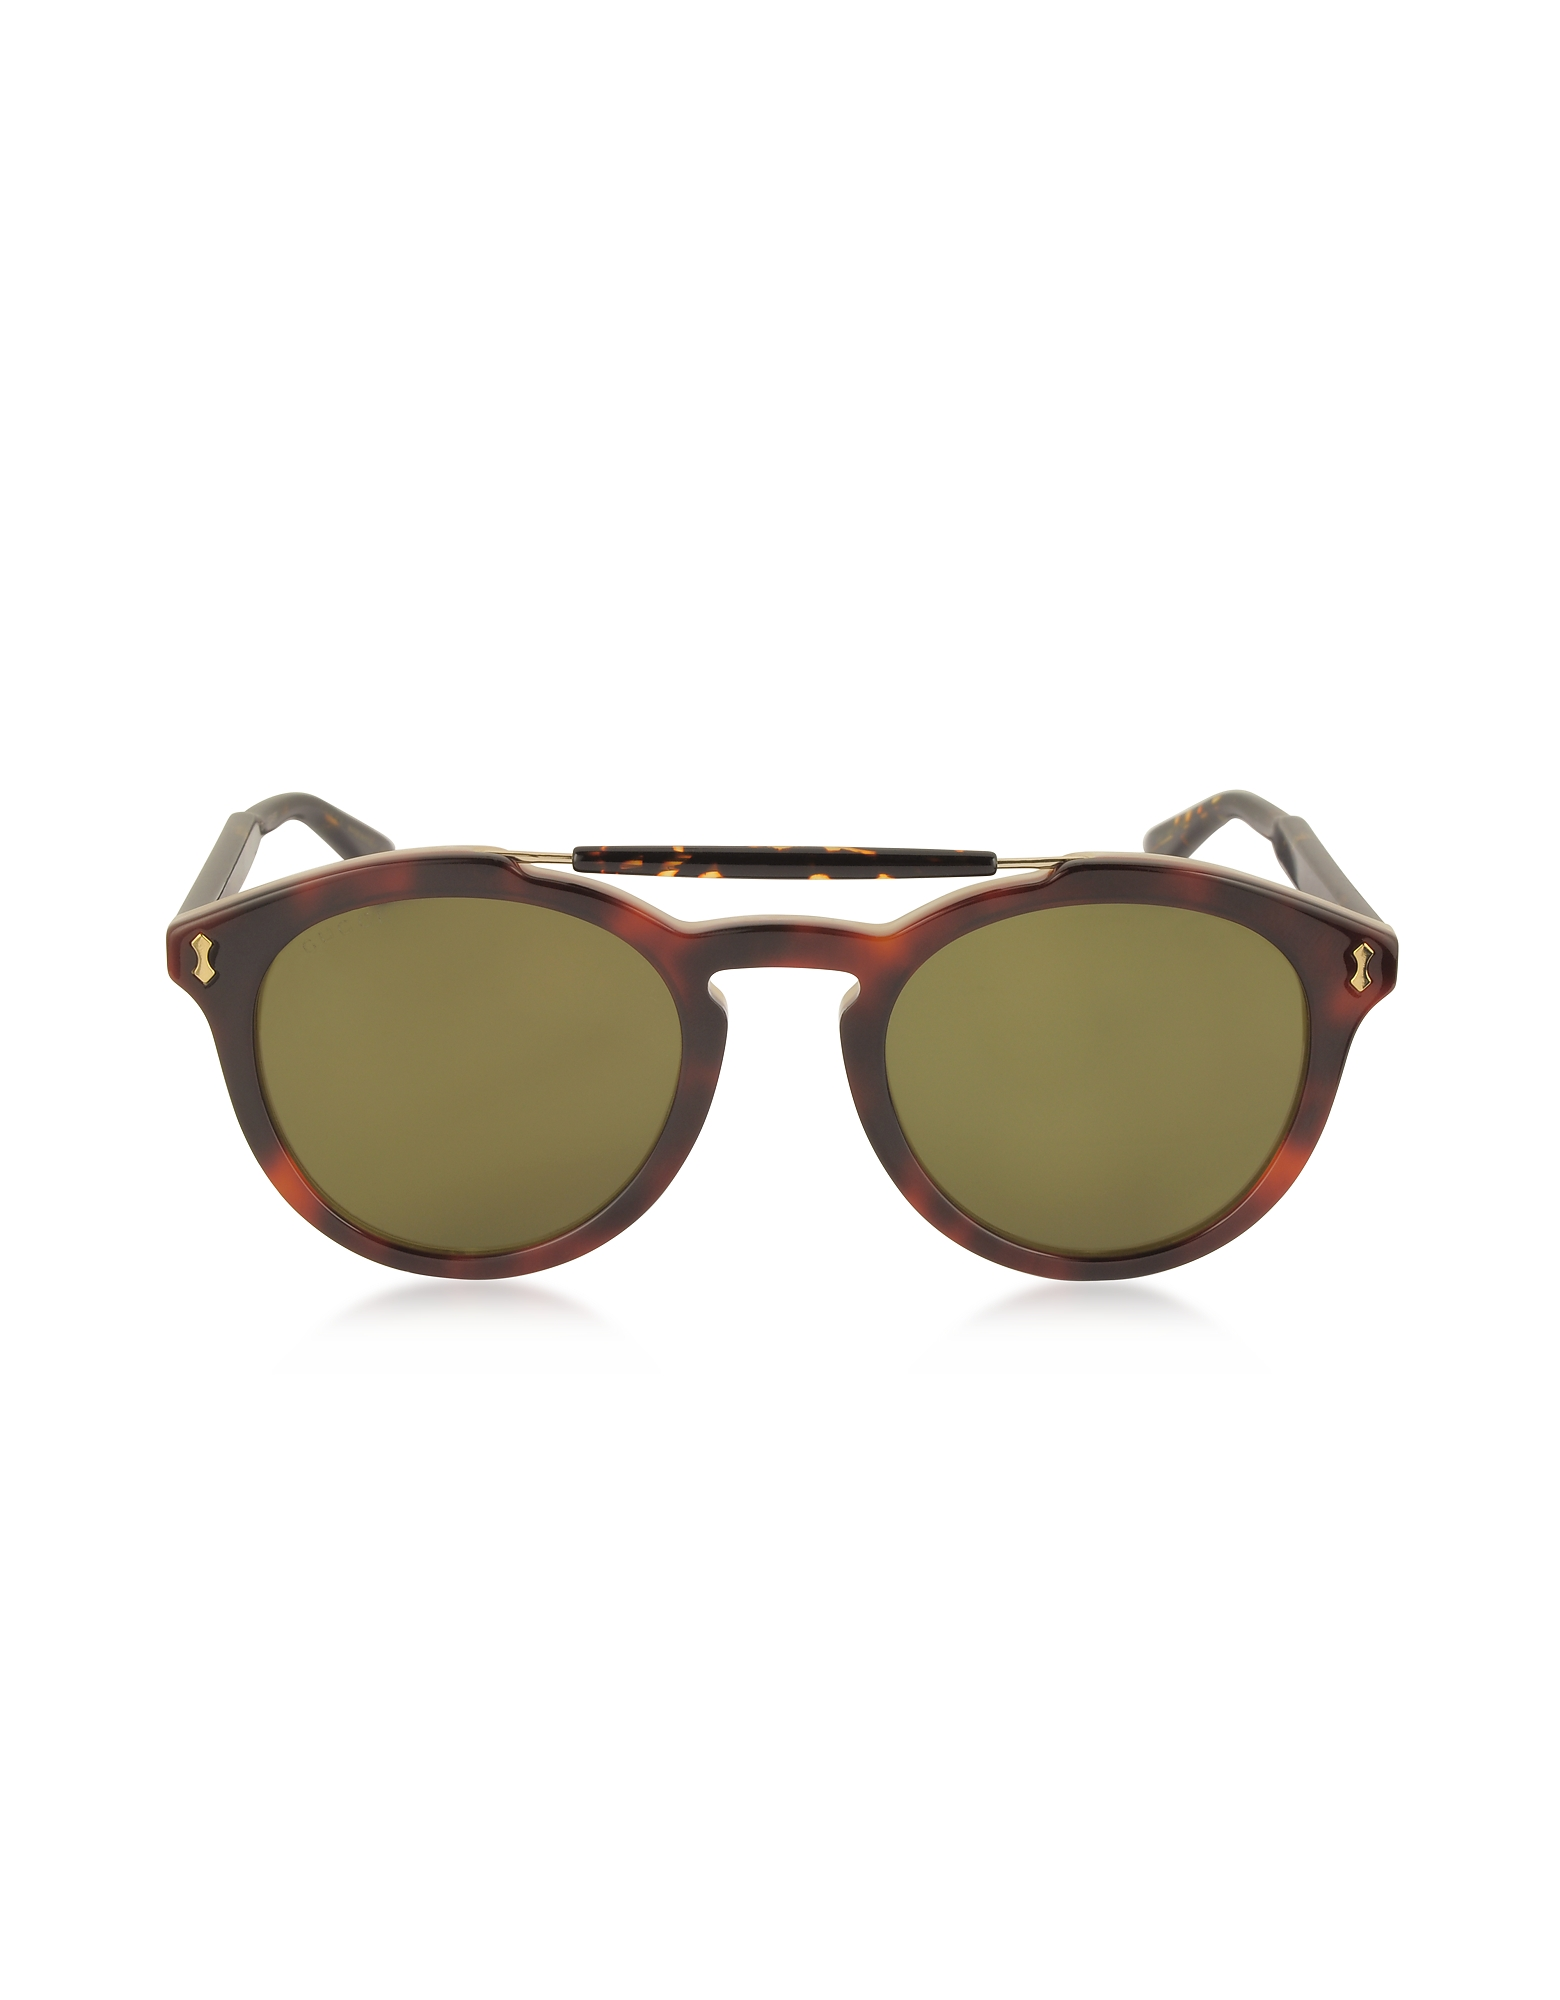 Gucci Designer Sunglasses, GG0124S Acetate Round Aviator Men's Sunglasses